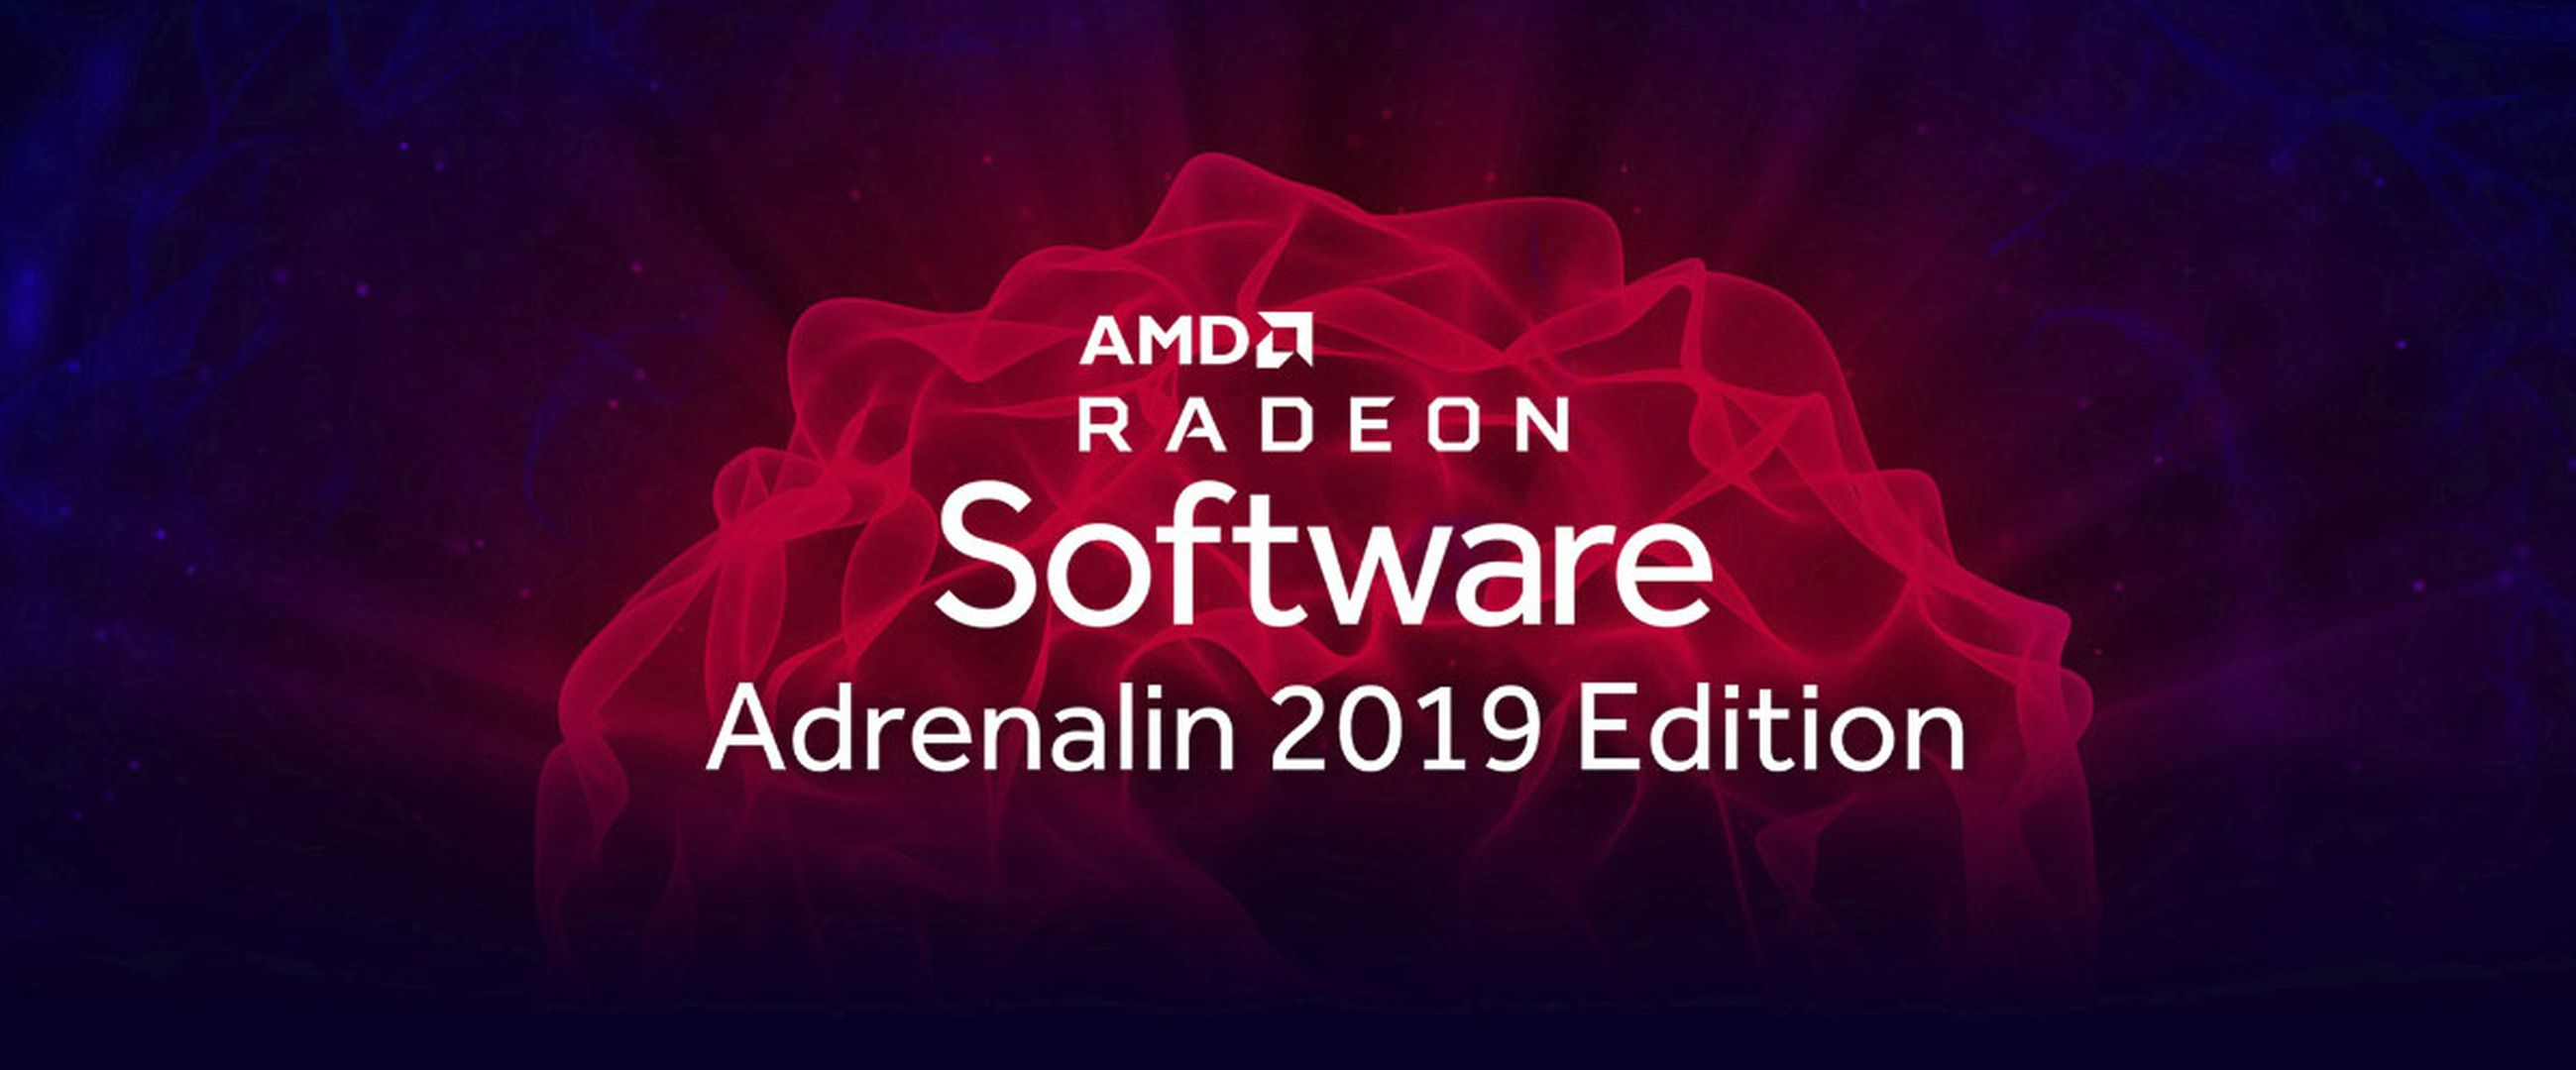 Radeon Software Adrenalin 2019 Edition 18 12 2 Is Up for